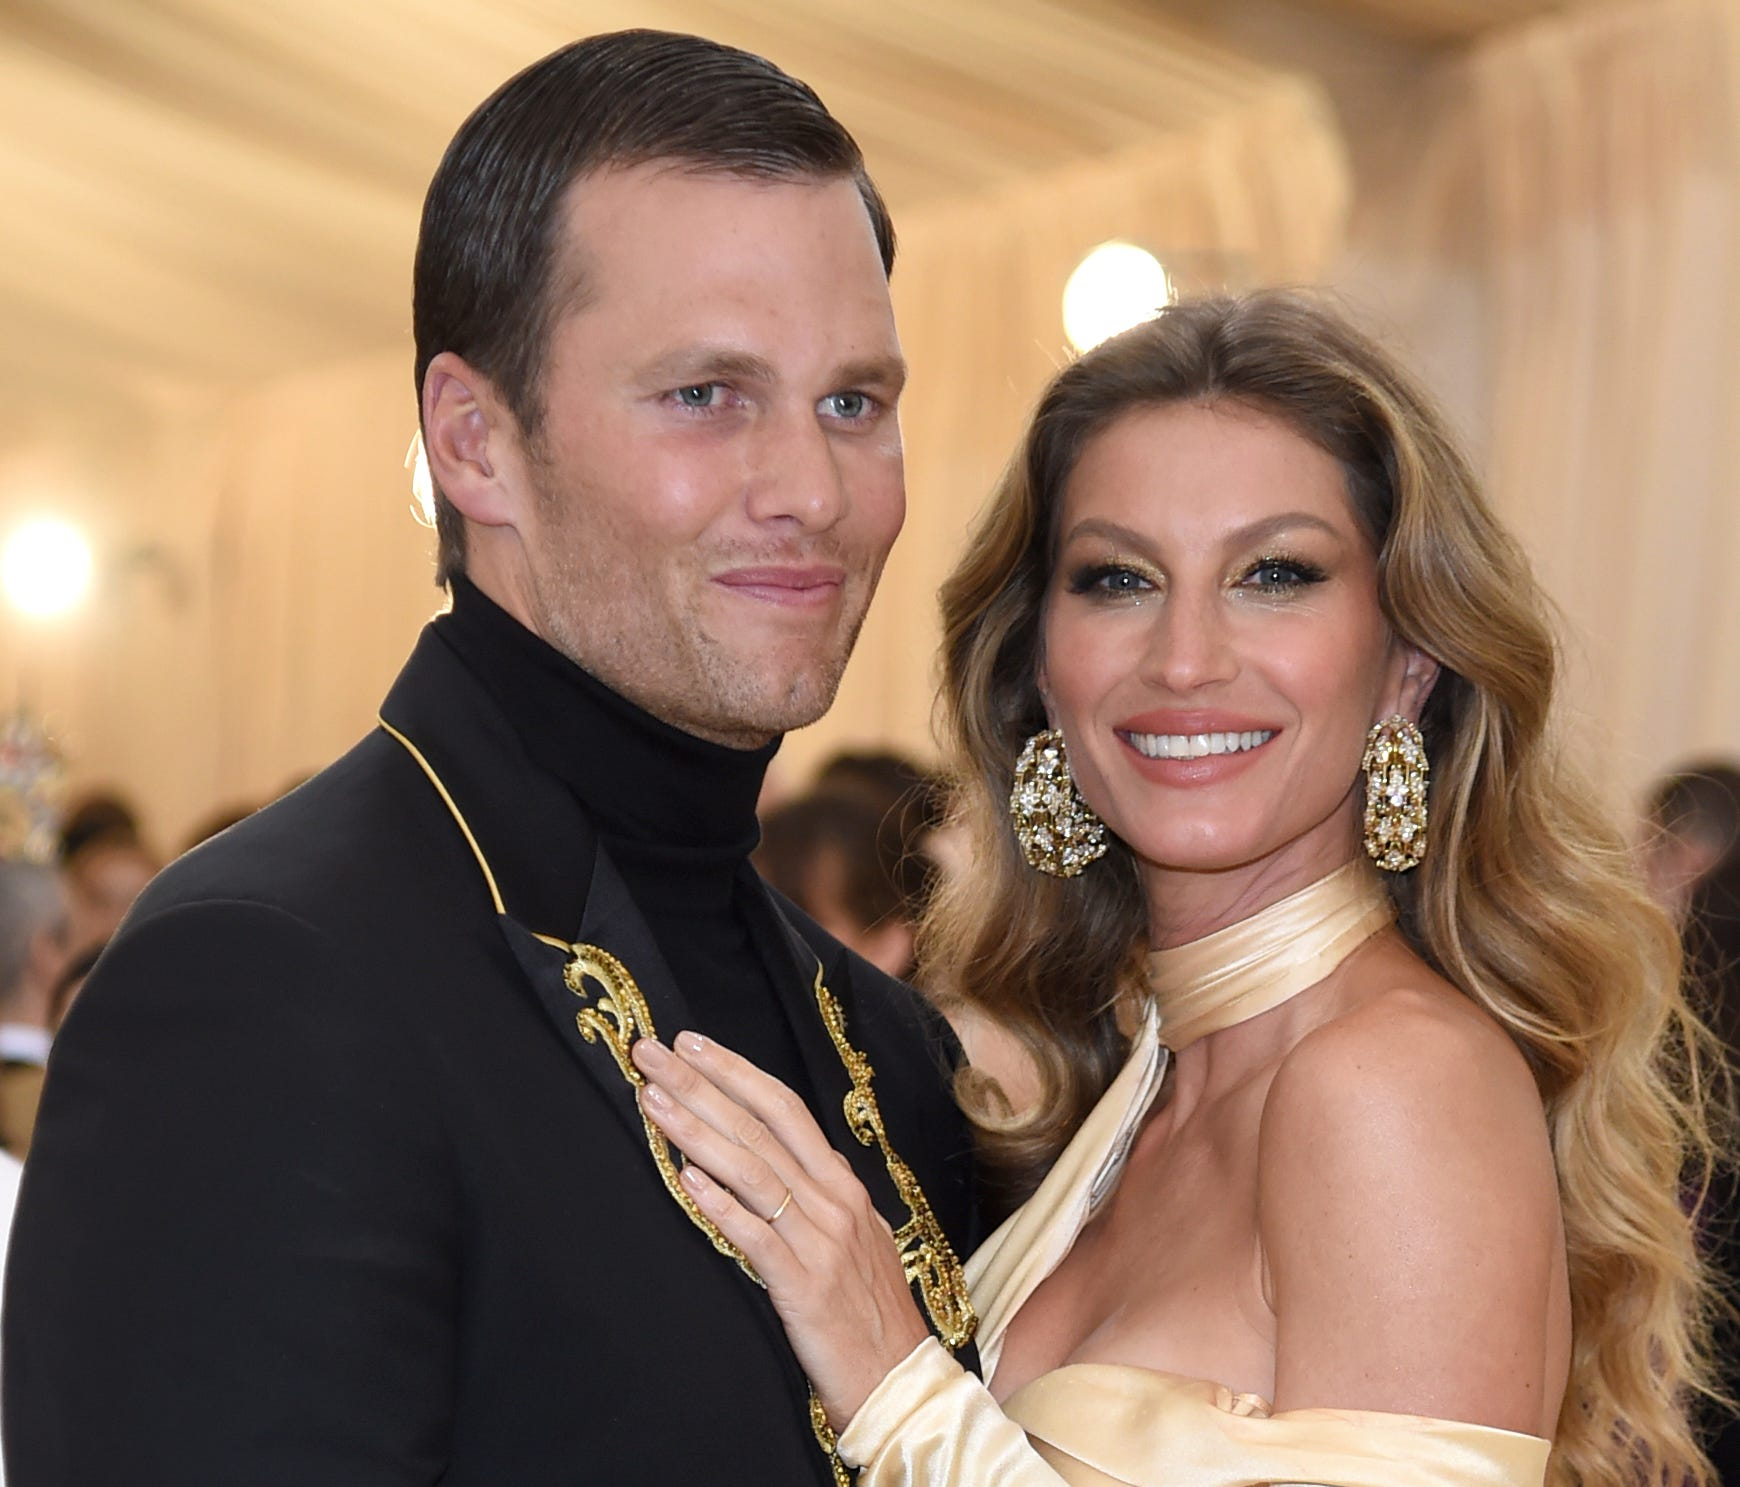 Tom Brady, left, and Gisele Bundchen attend The Metropolitan Museum of Art's Costume Institute benefit gala celebrating the opening of the Heavenly Bodies: Fashion and the Catholic Imagination exhibition.